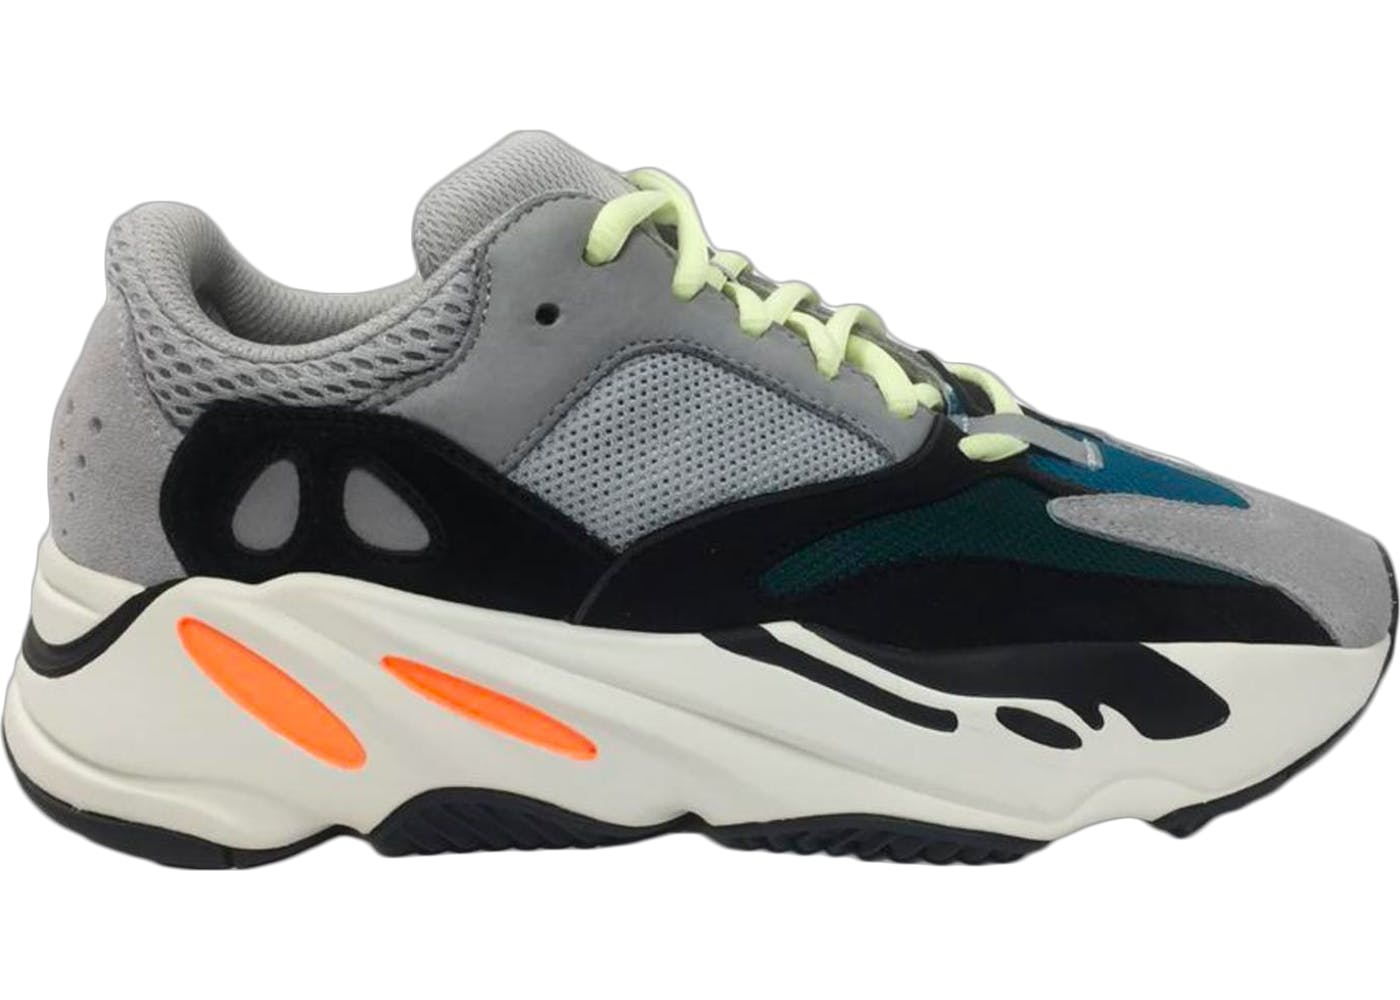 552f95a7b Adidas-Yeezy-Wave-Runner-700-Solid-Grey - WearTesters